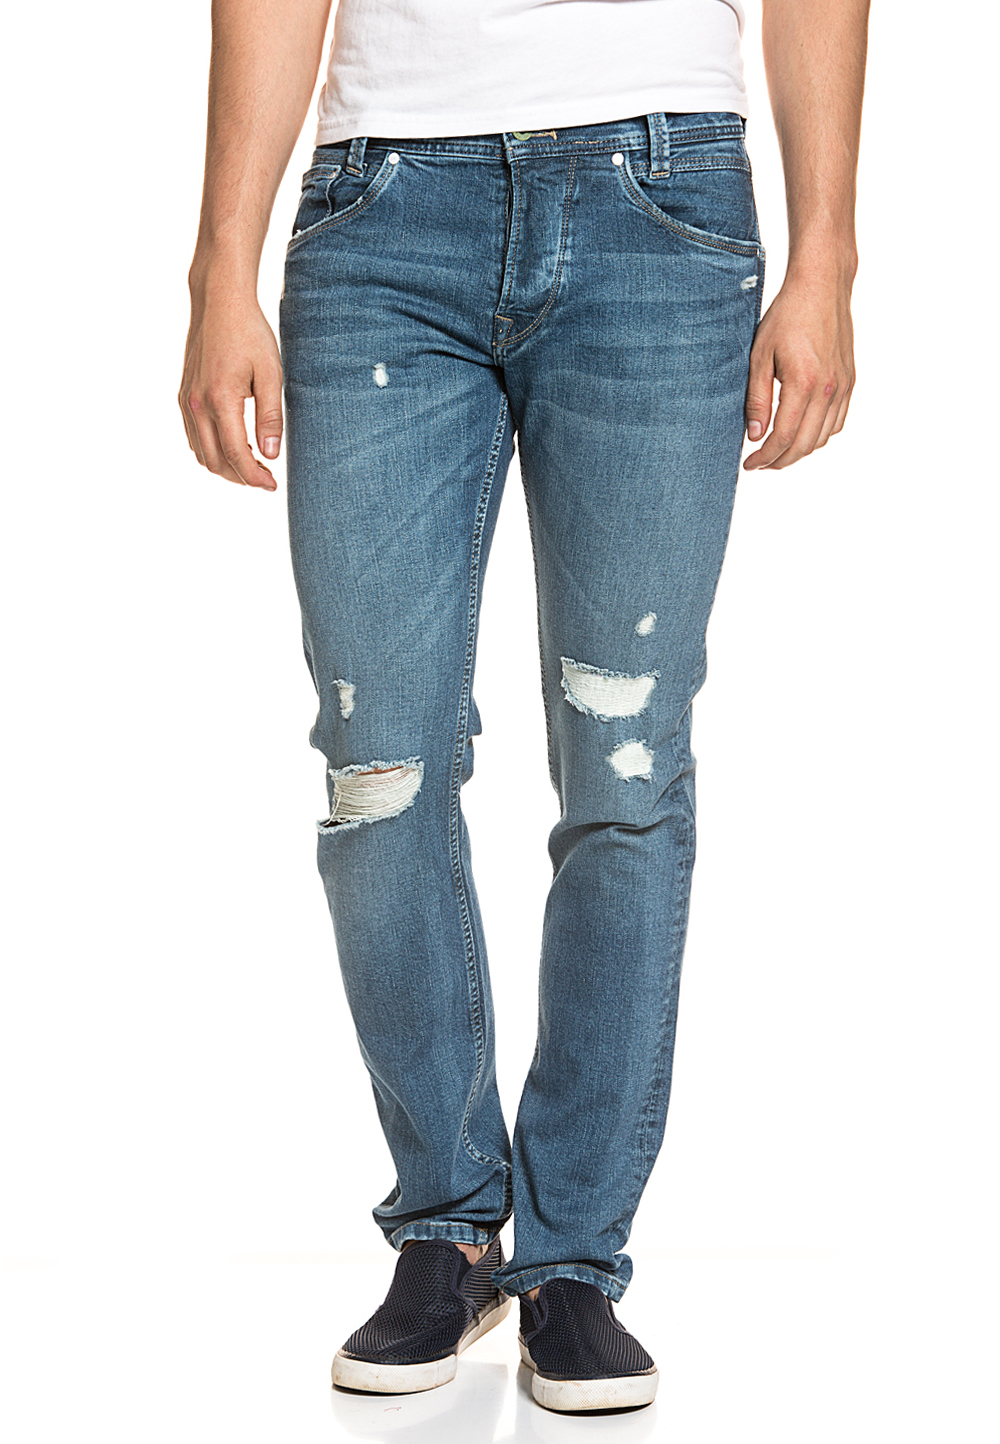 Pepe Jeans Stretch-Jeans Spike Eco, Regular Fit blau | Bekleidung > Jeans > Stretch Jeans | Pepe Jeans